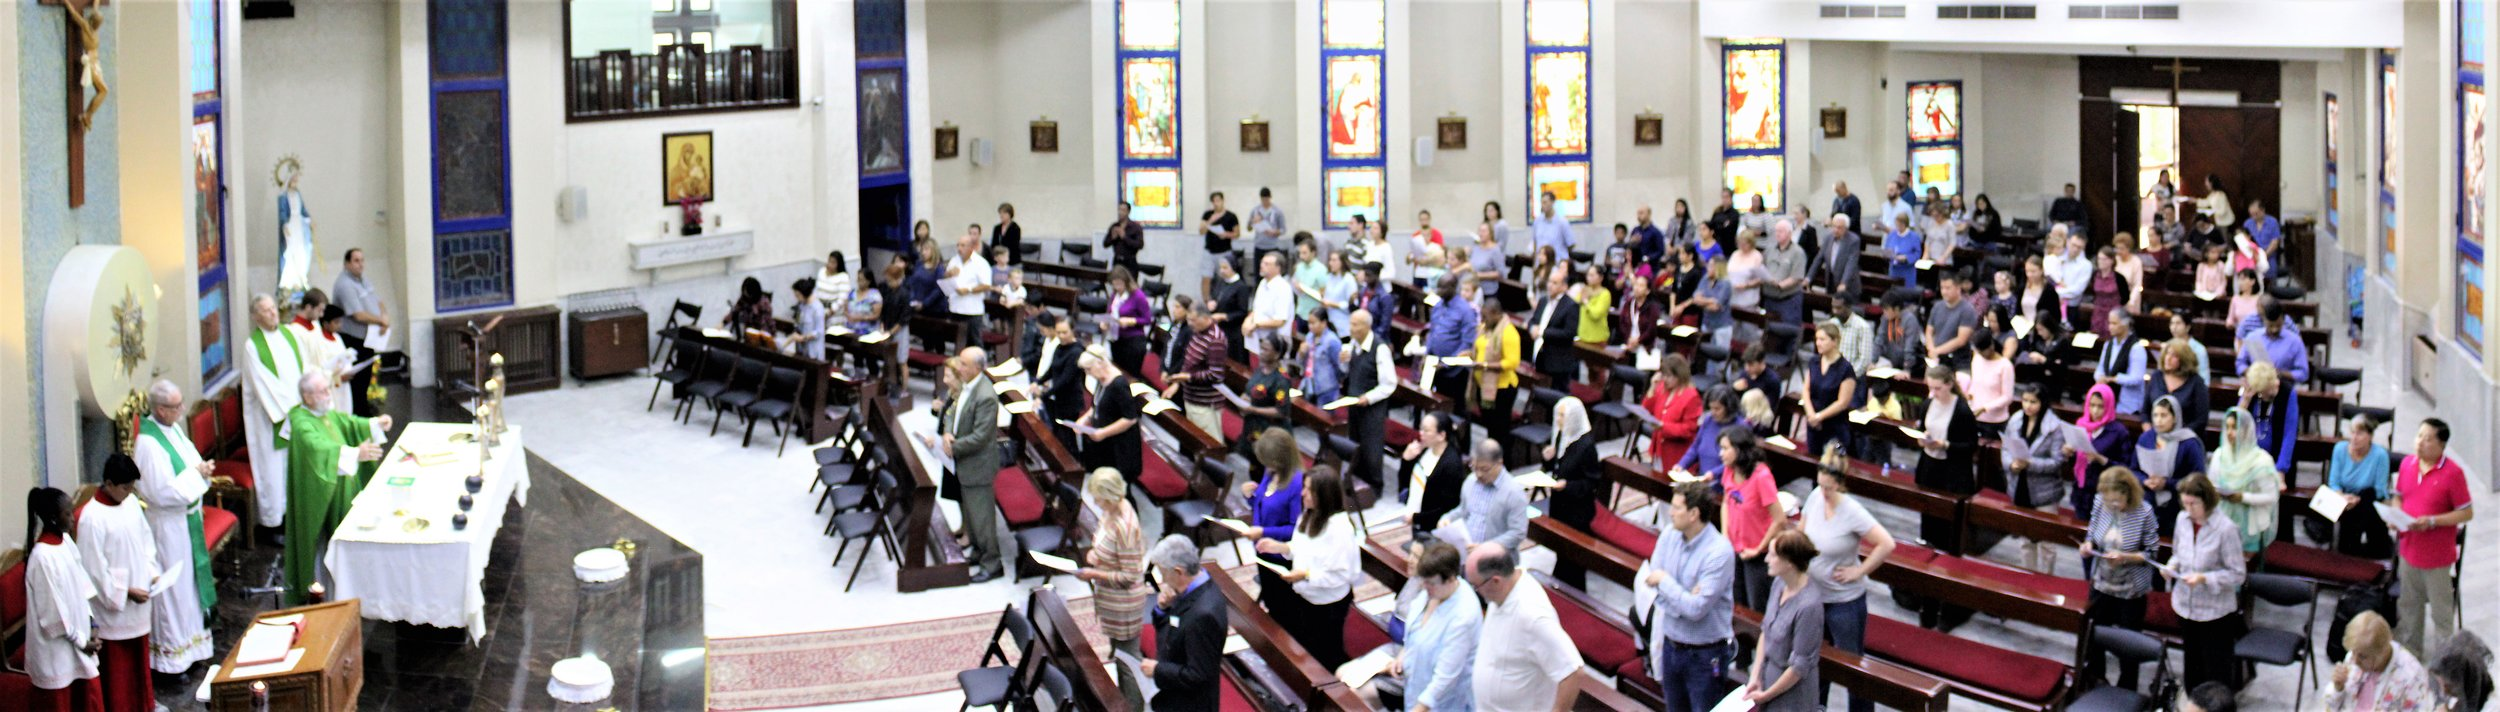 In Amman, Jordan, over 80 parishioners and graduates of Jesuit schools took part in Jesuit Alumni Sunday Mass, marking the first international location for the popular annual event.